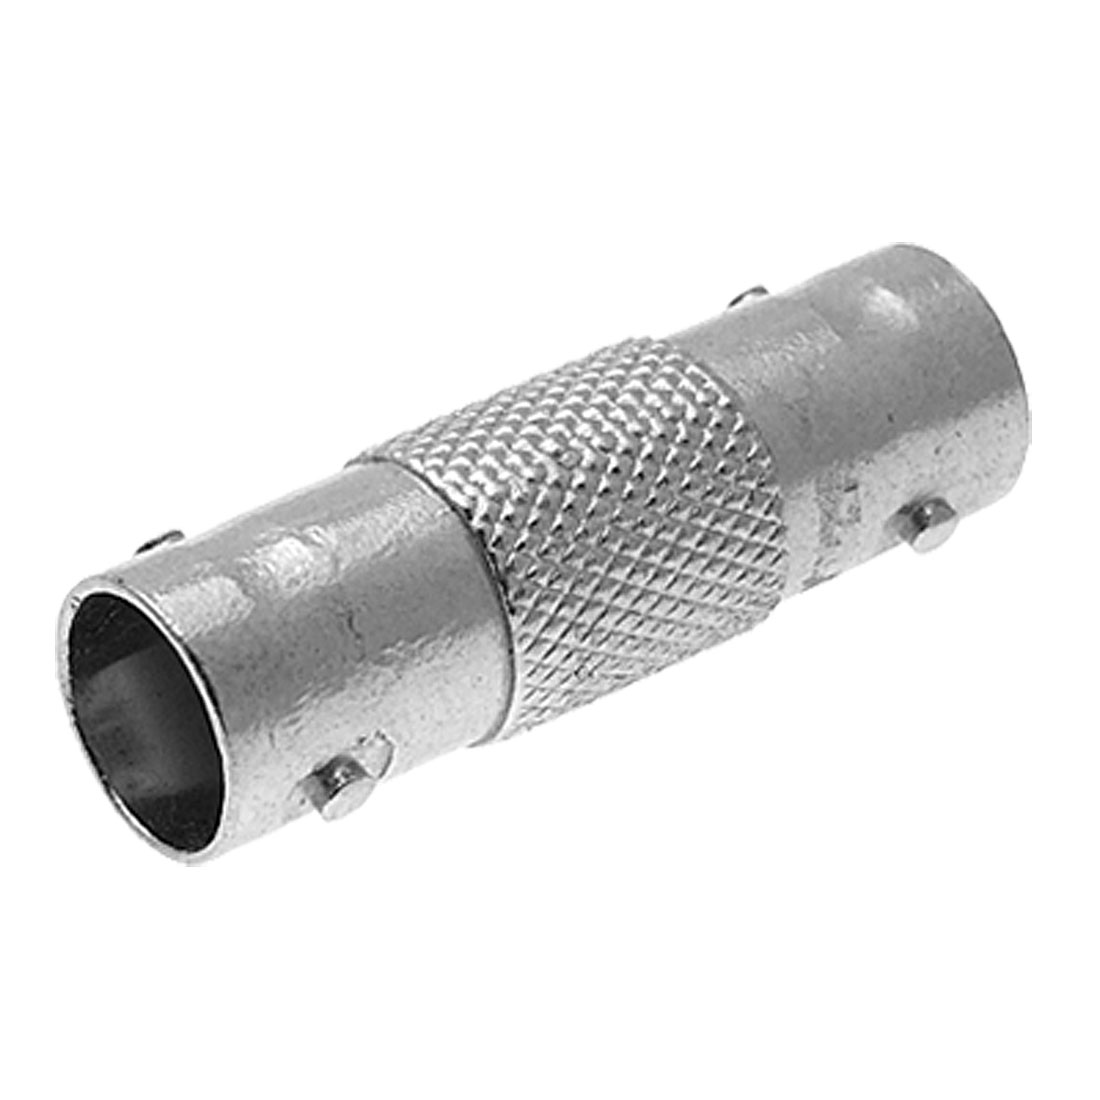 Silvery BNC Female to Female Couplers Connector Adapter